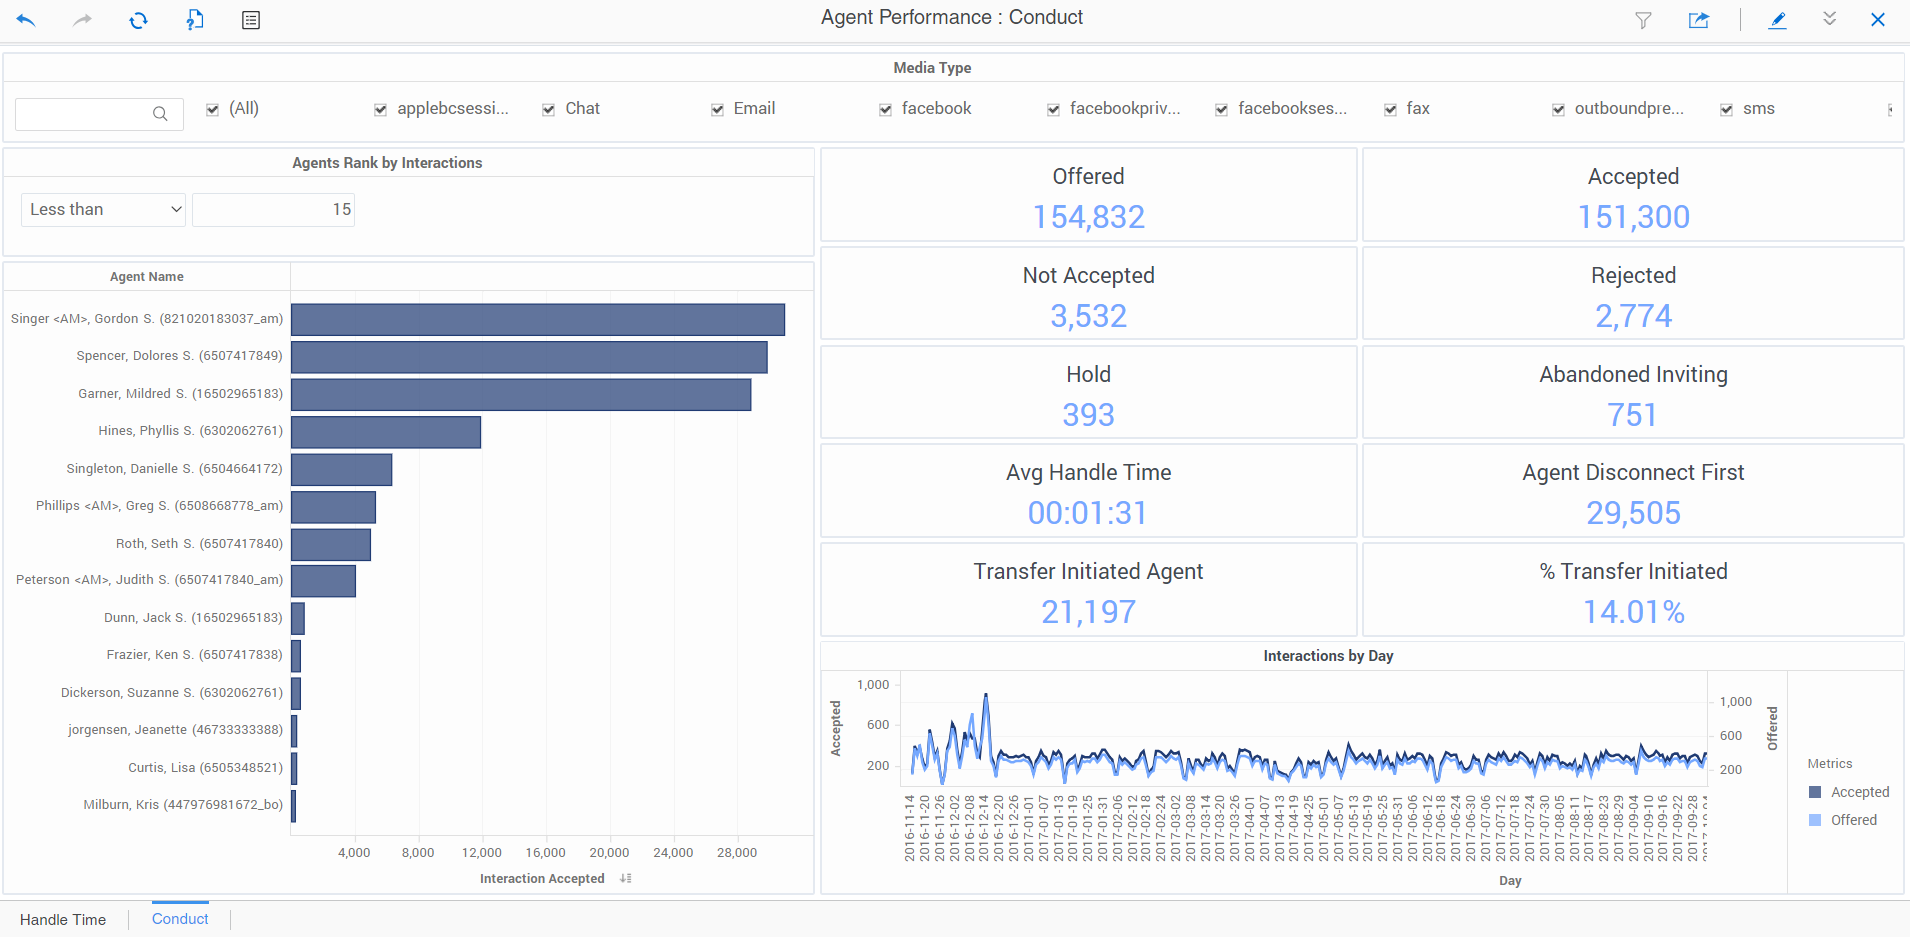 Genesys PureEngage Demo - Agent Performance